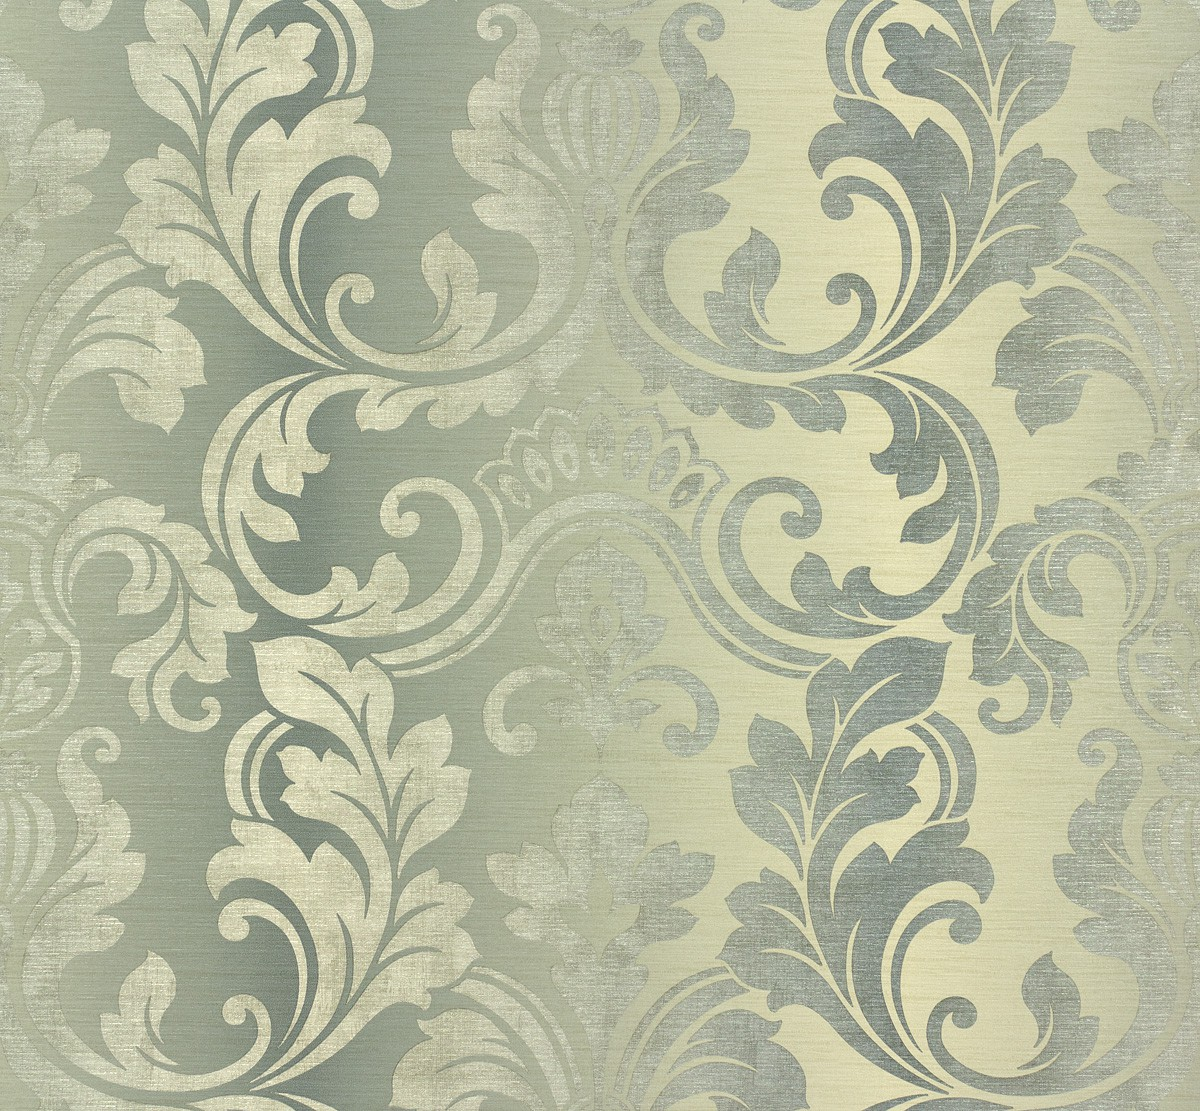 Tapete barock beige blau hollywood as creation 95417 4 for Tapete barock